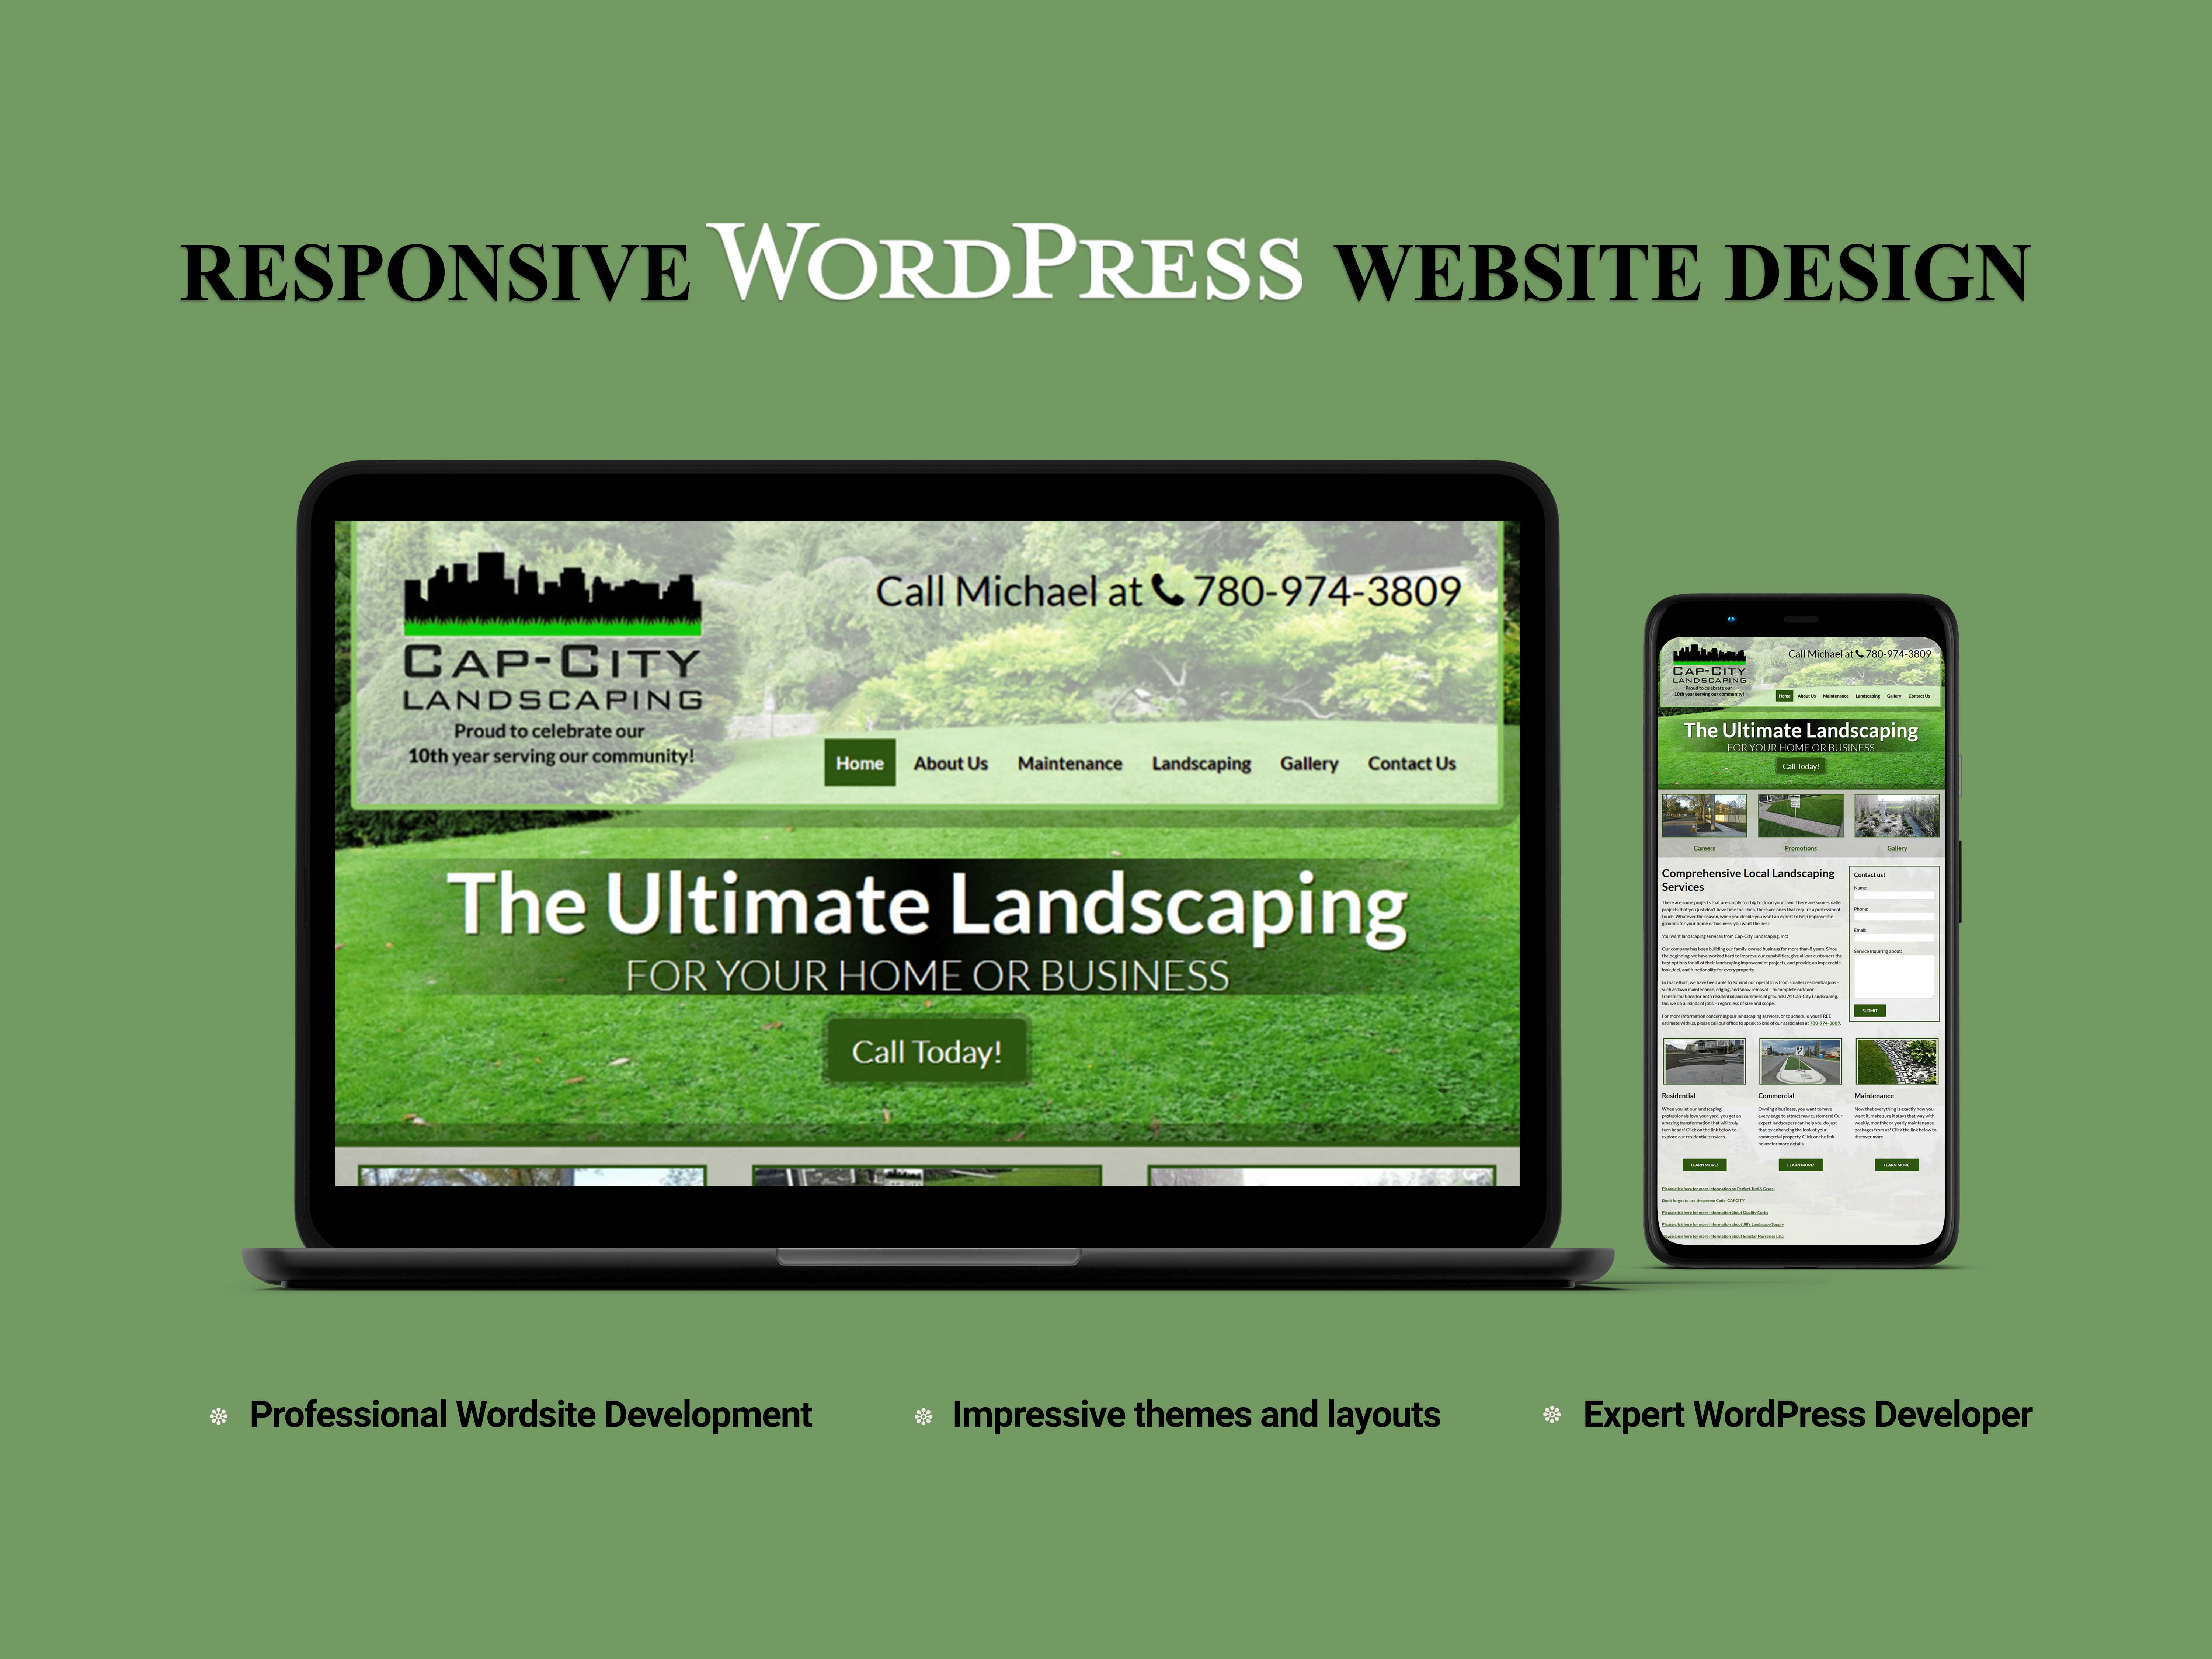 I will Design and Clone WordPress Website With Avada Theme